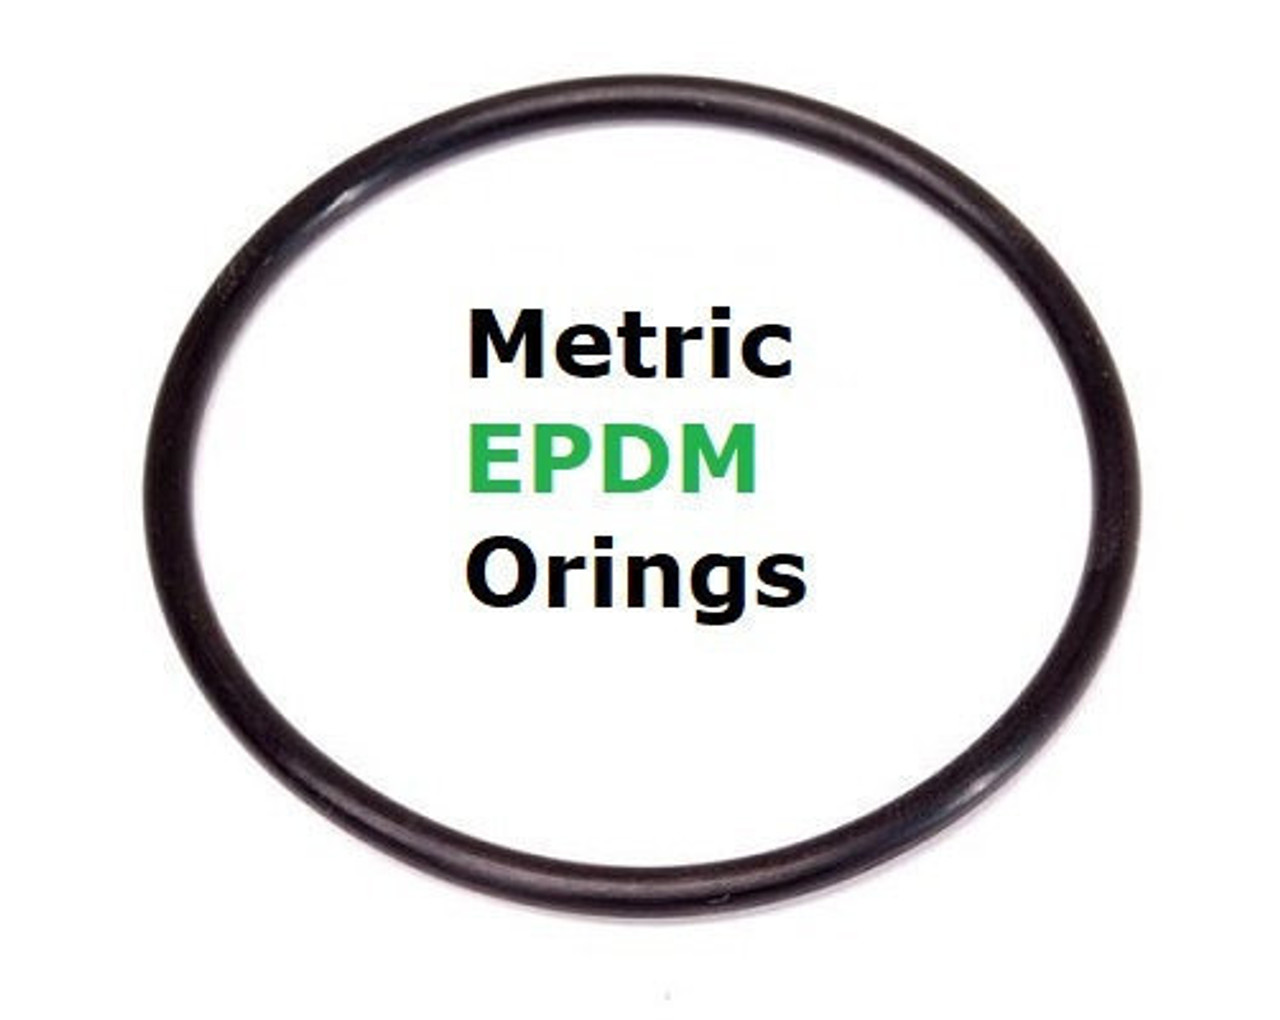 Metric EPDM 70  Orings 5.7 x 1.9mm    Minimum 25 pcs